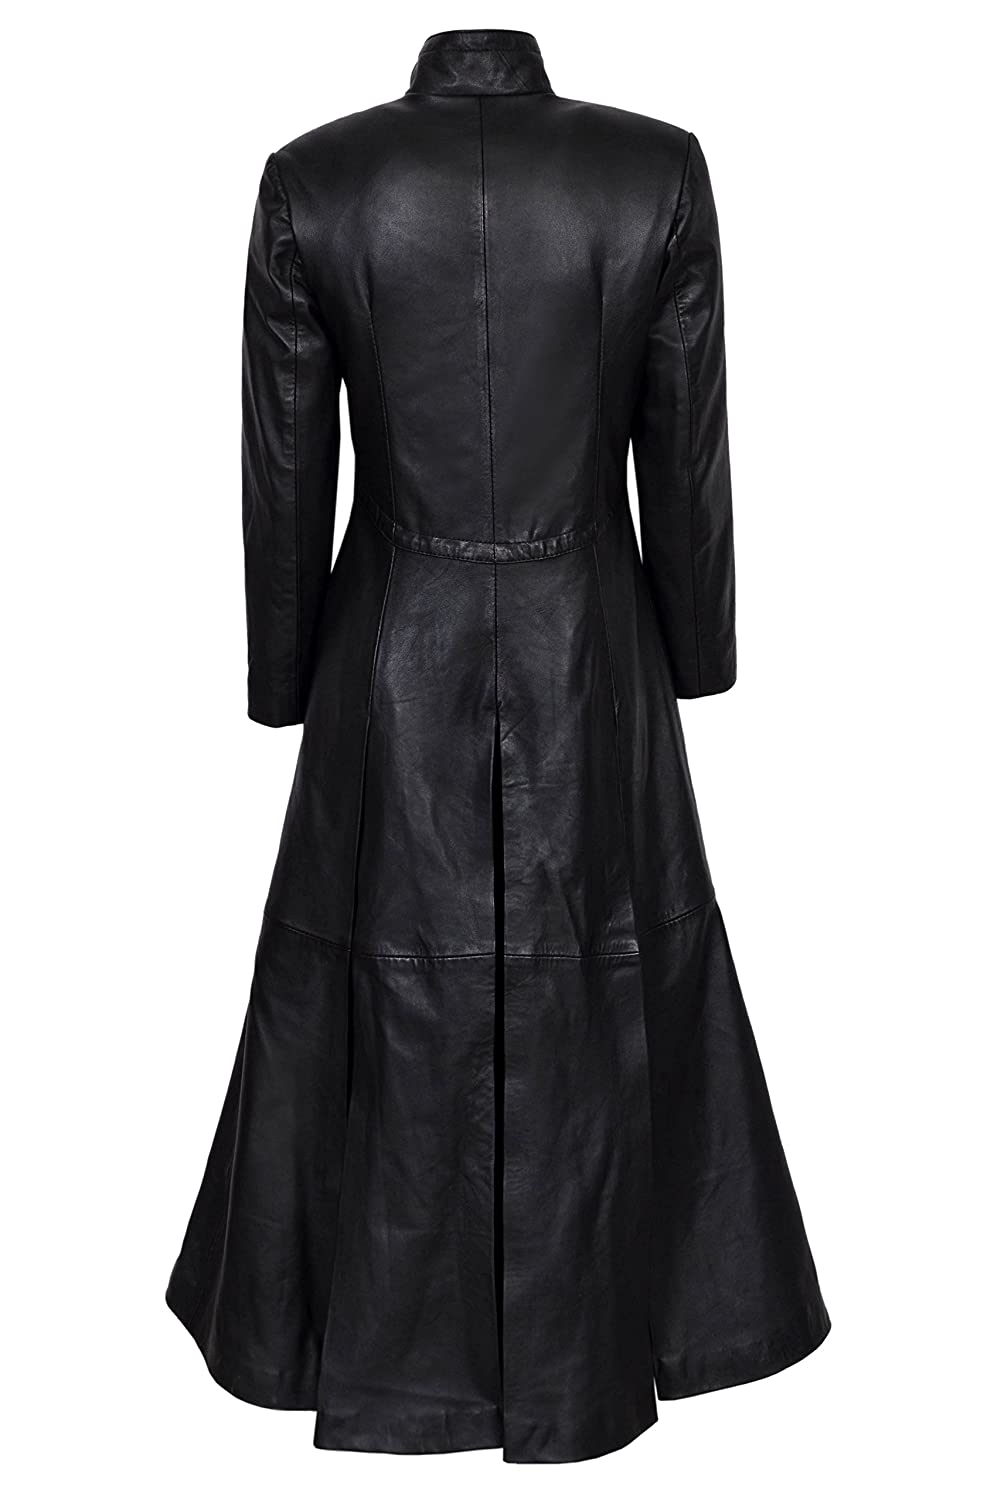 Ladies New Matrix Black Soft Leather Full-Length Long Gothic Coat Rock Jacket at Amazon Womens Coats Shop